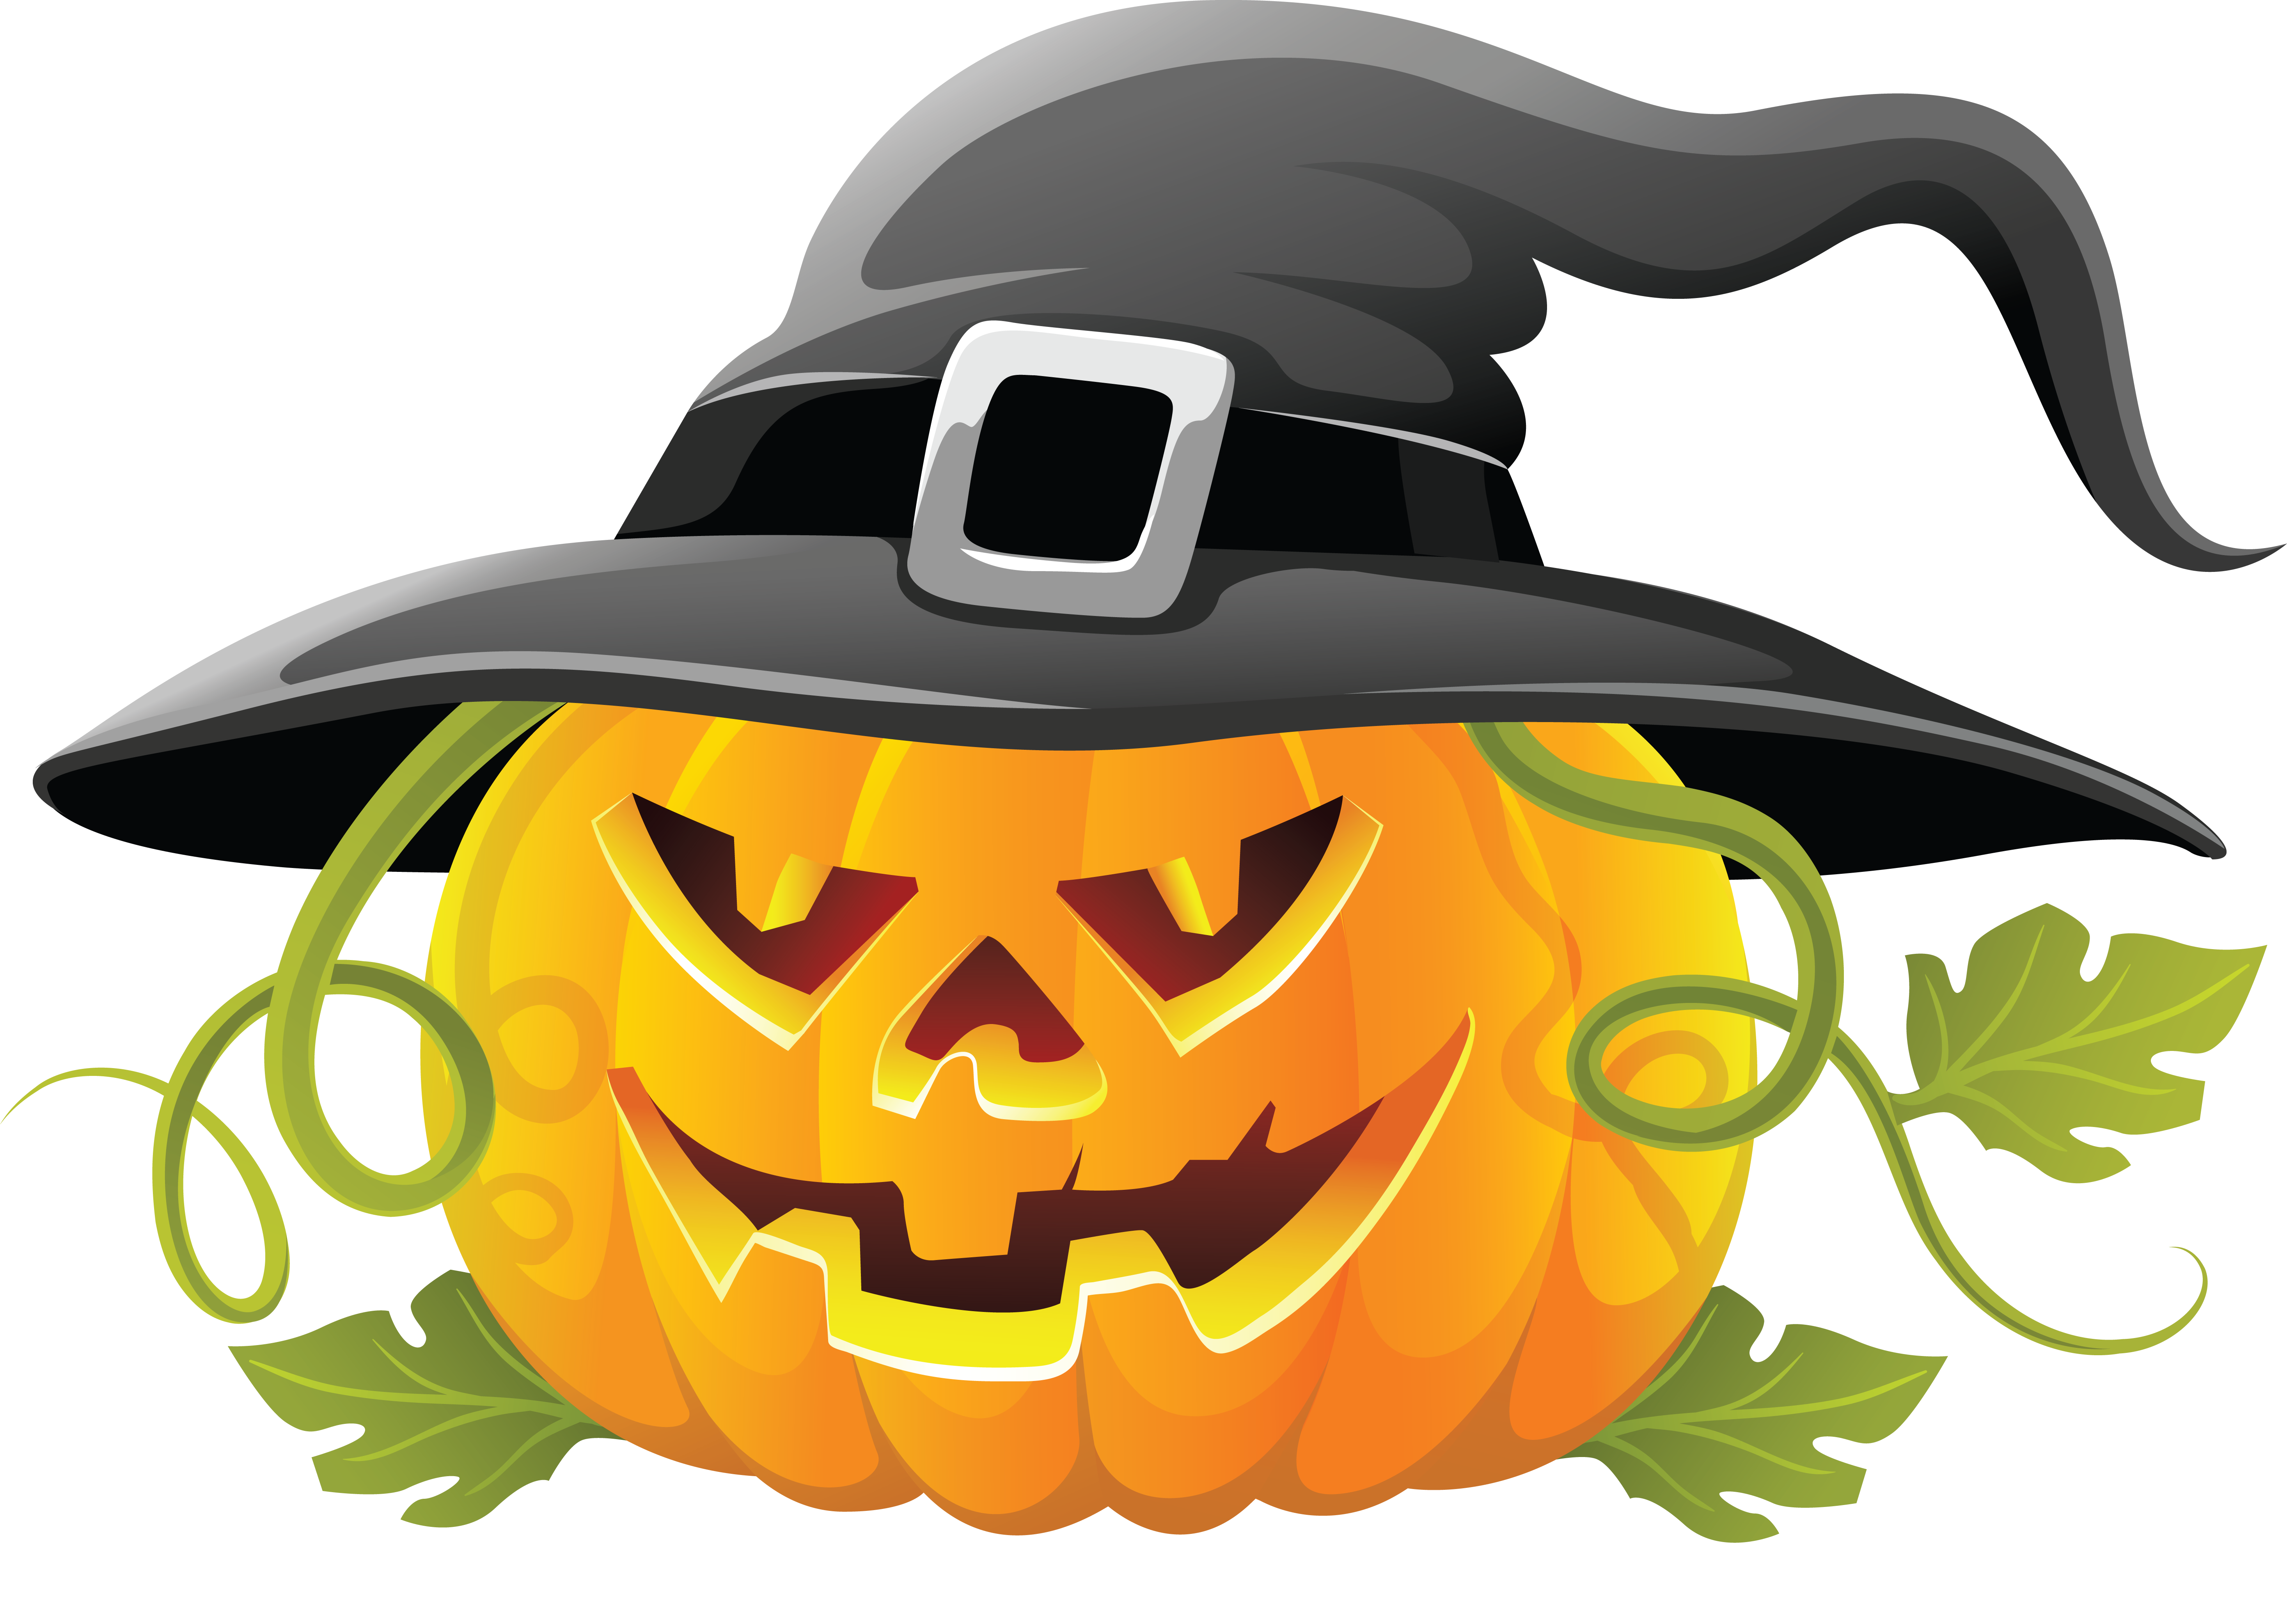 Halloween clipart transparent. Large pumpkin with witch